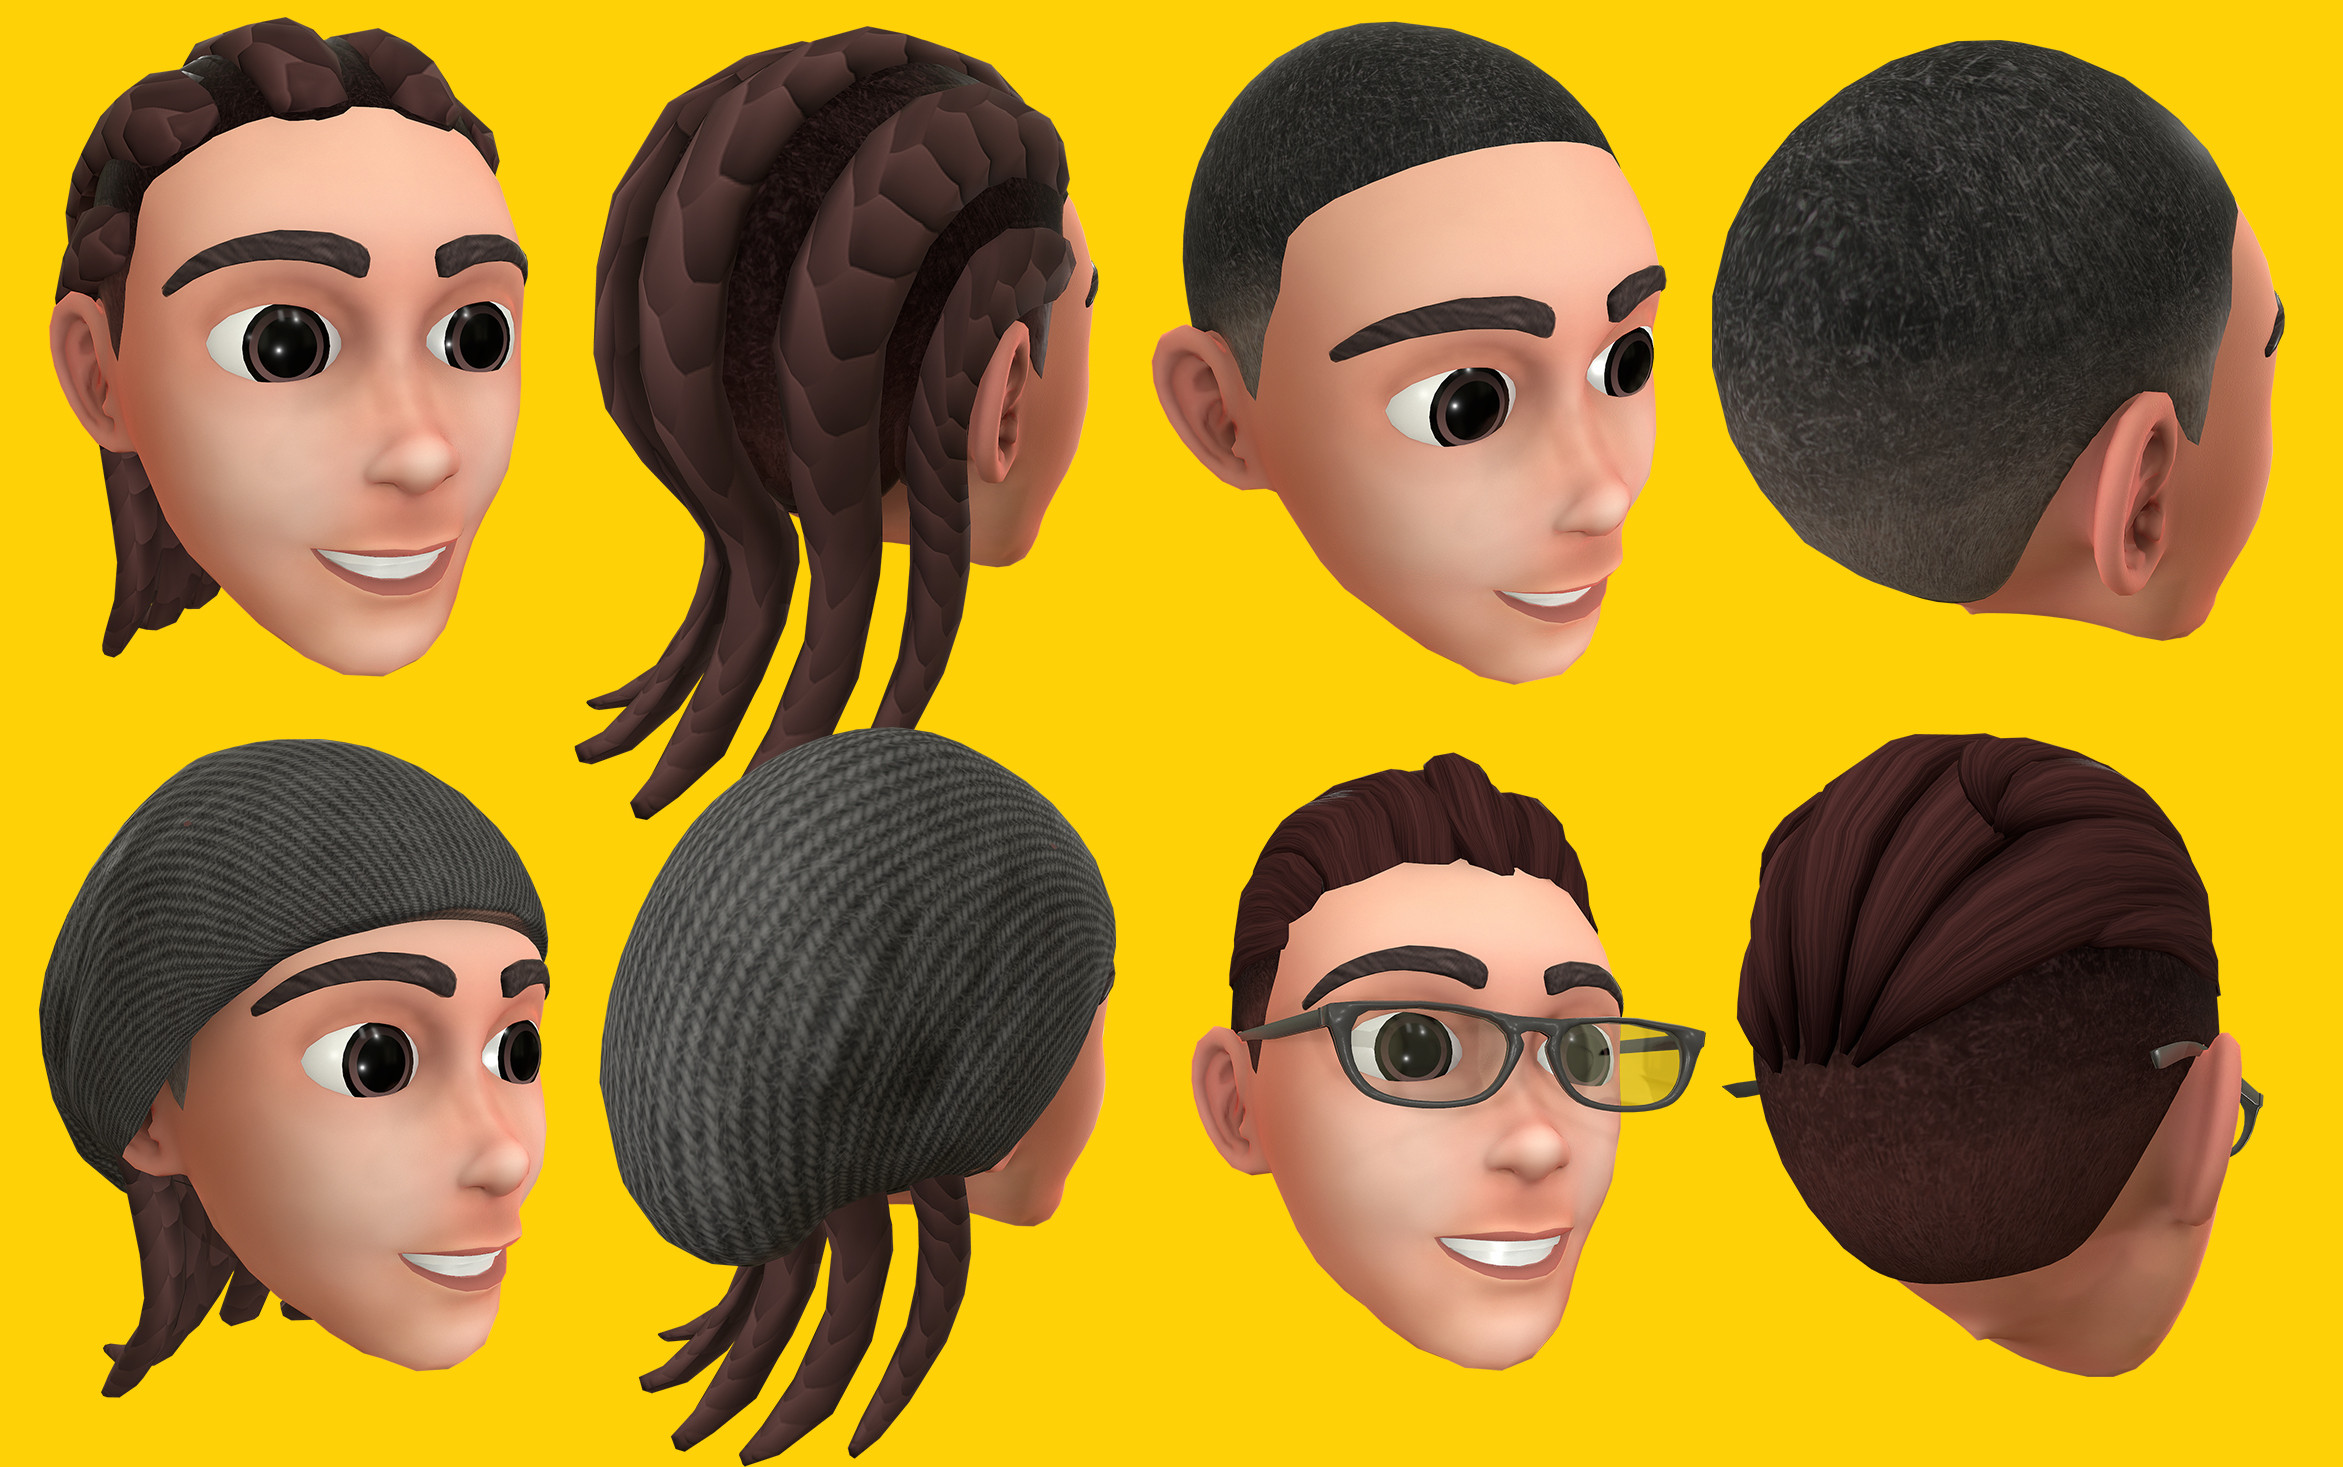 Textured hair styles & accessories. Lead 3D Artist on hairstyles consistency and training. Modeling of hairs & wool-cap by Mark Lopez and Mert Suha Oner.